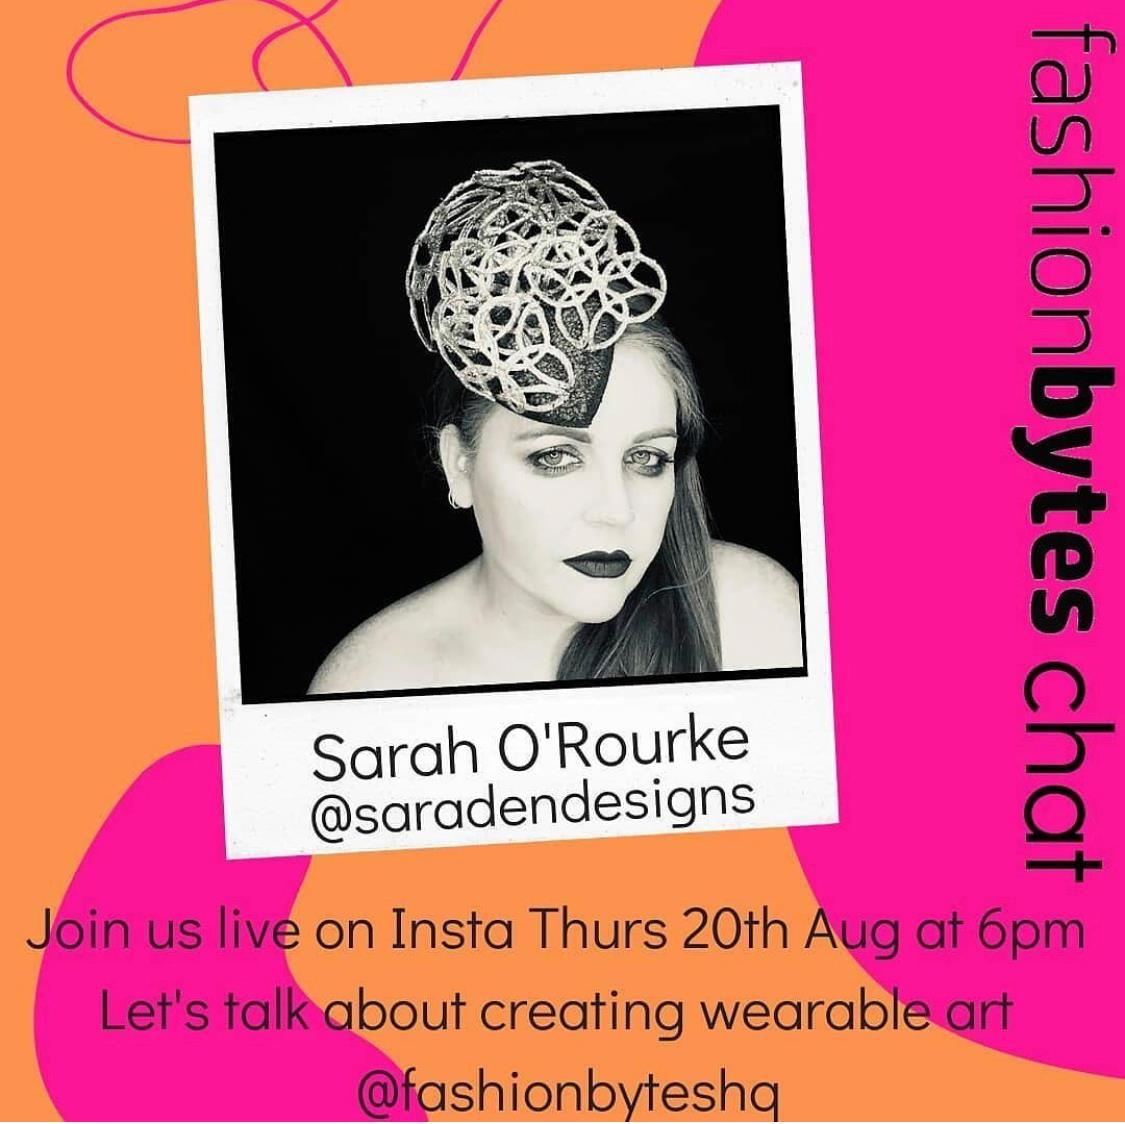 Fashion Bytes Interview with Hilary McCrea and Sarah O' Rourke from Saraden Designs Millinery